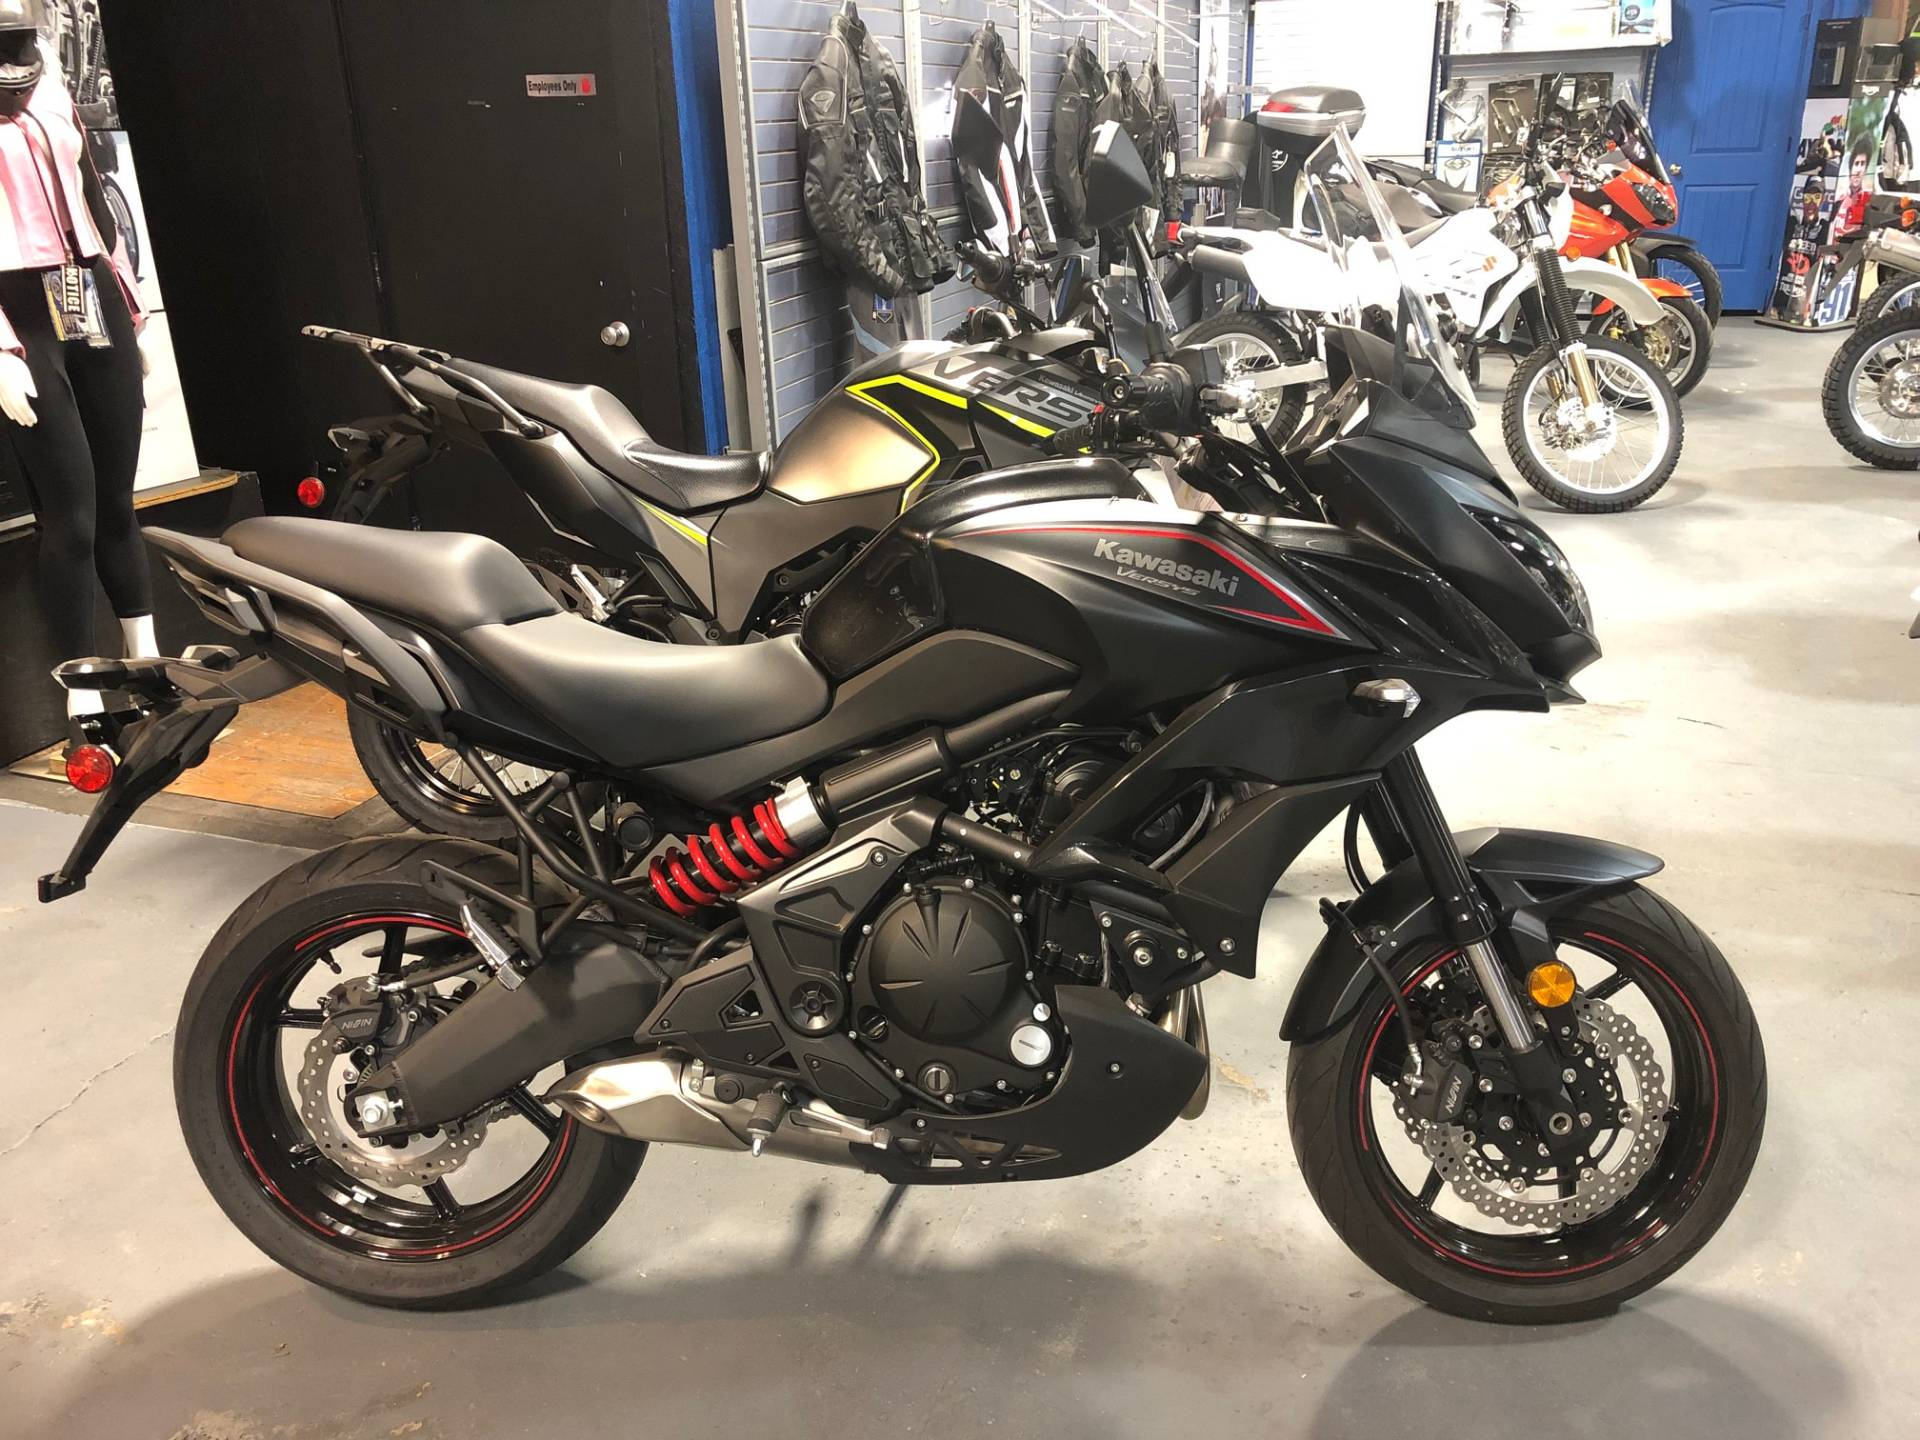 2018 Kawasaki Versys 650 ABS in Kingsport, Tennessee - Photo 1